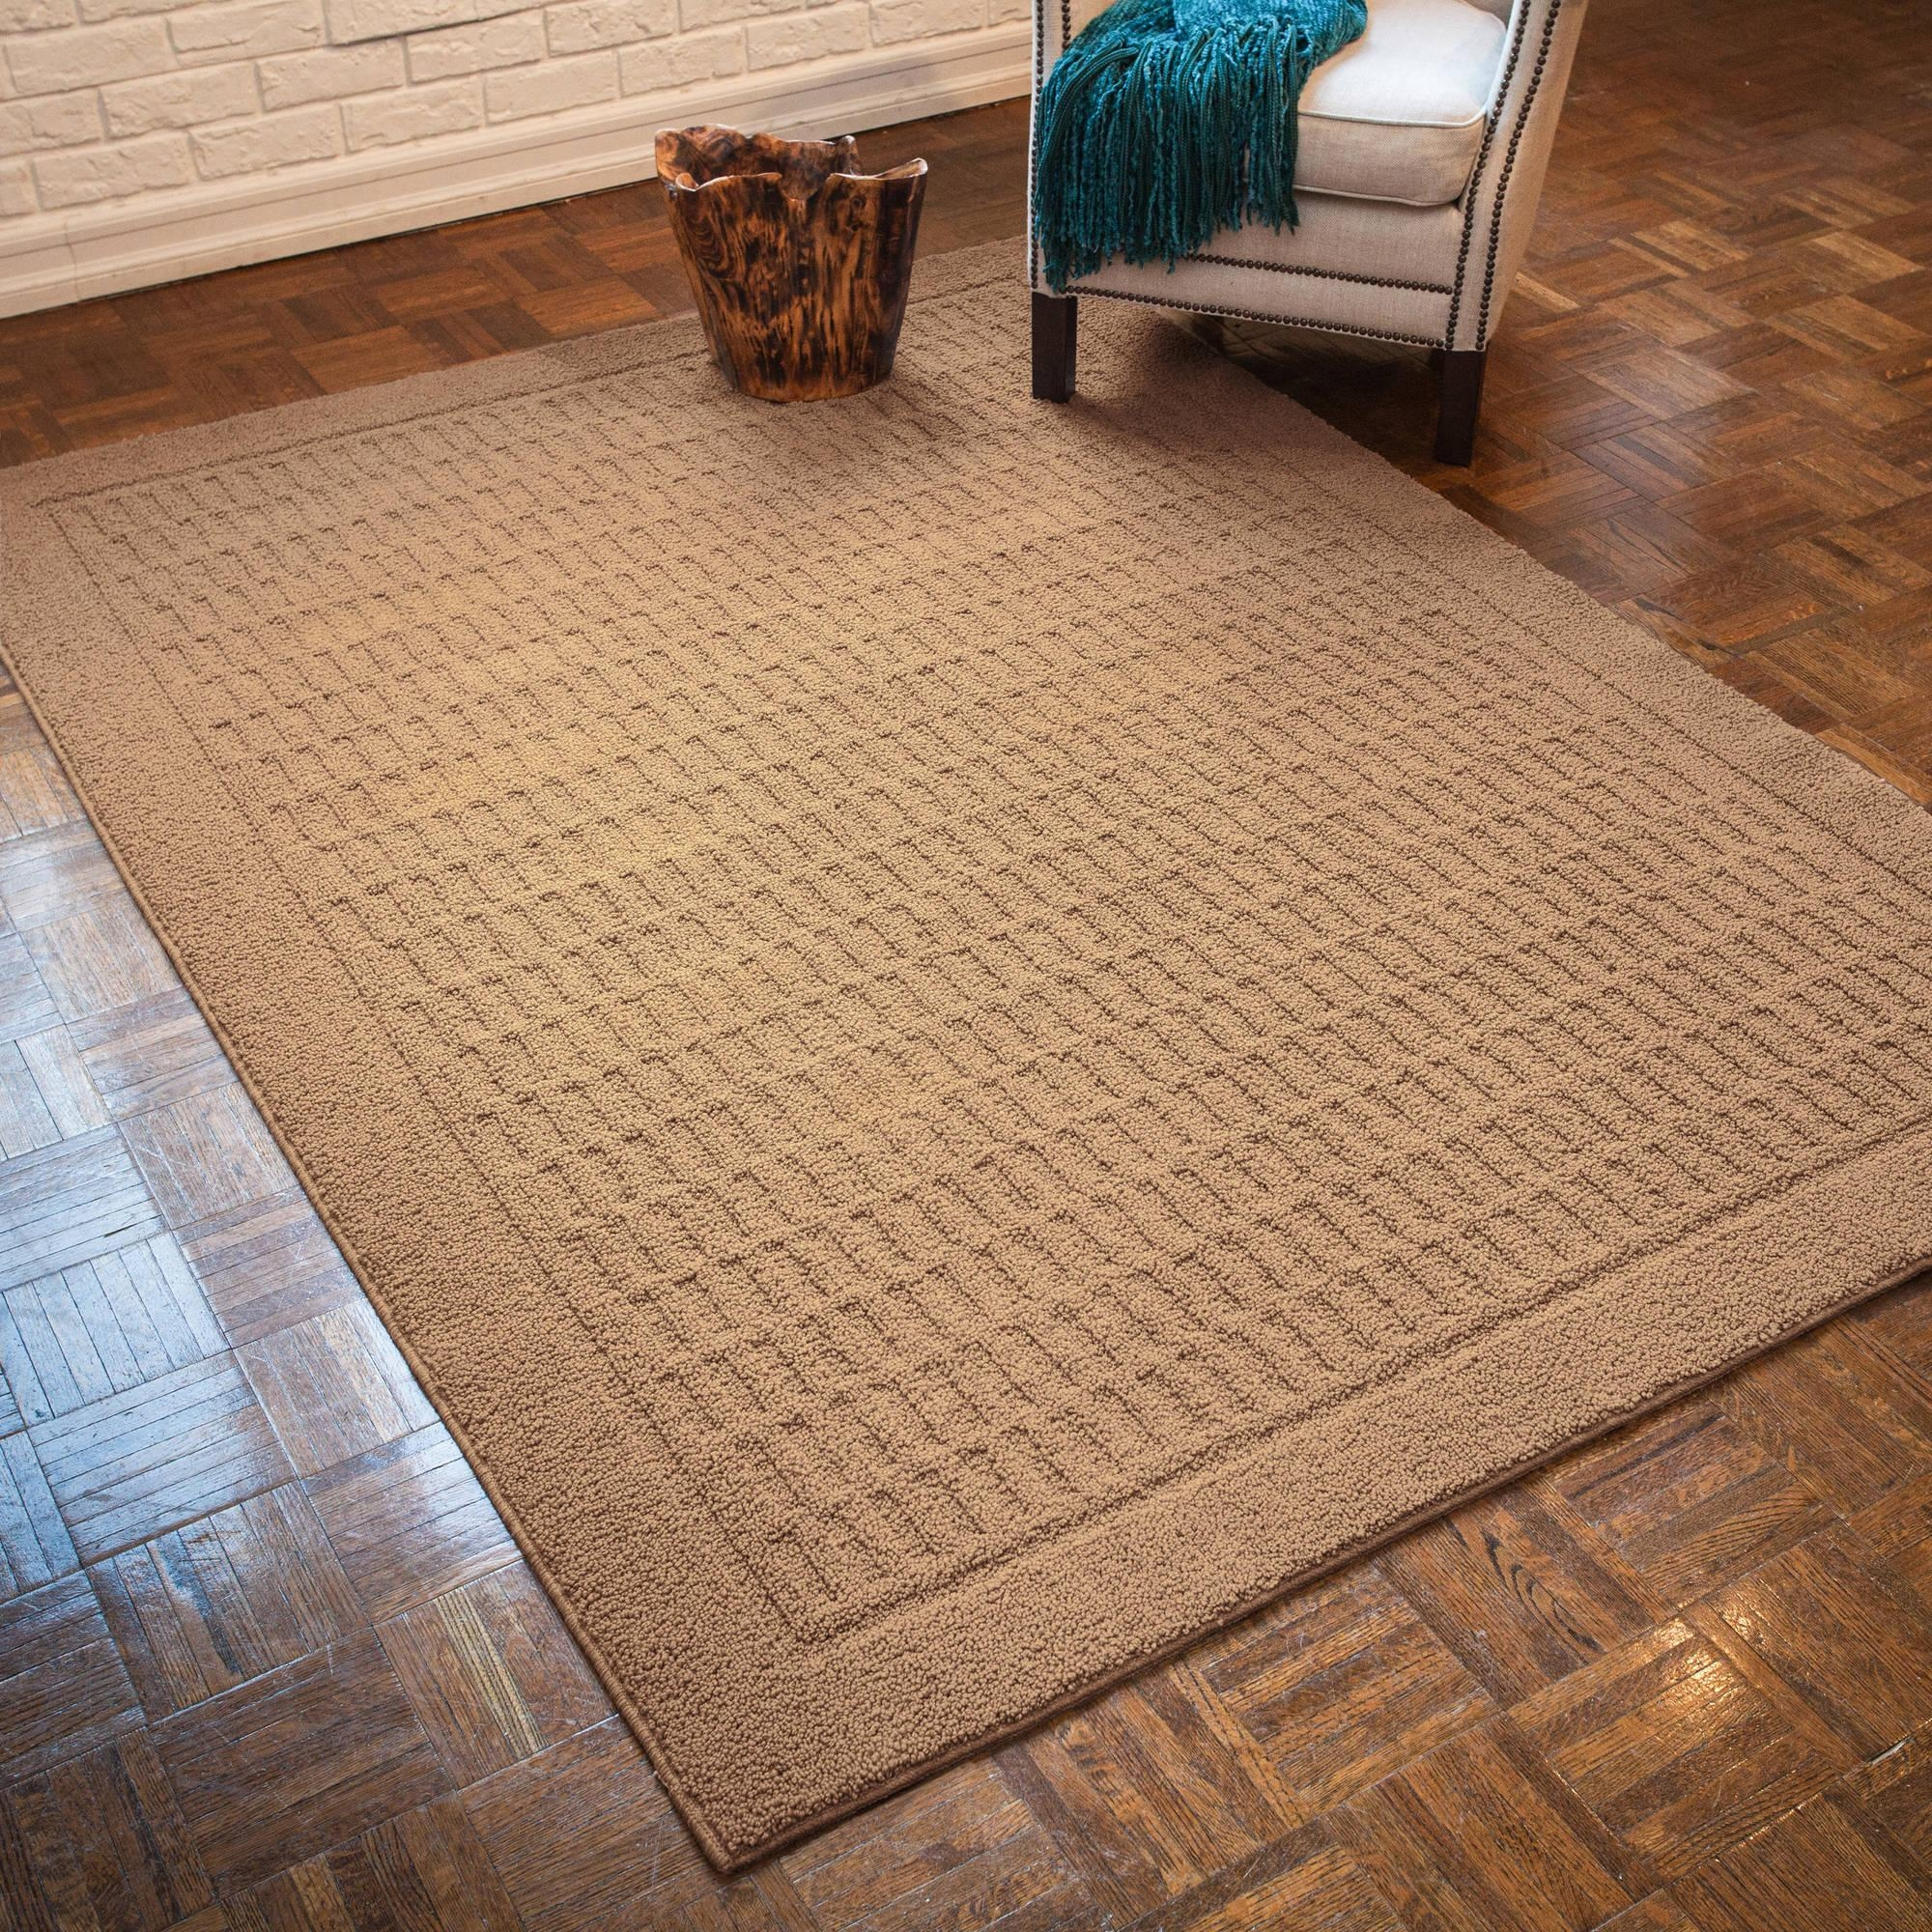 Wondrous Wool Sisal Rugs 118 Wool Sisal Rugs Direct Sisal Rug With Wool Sisal Area Rugs (#9 of 15)